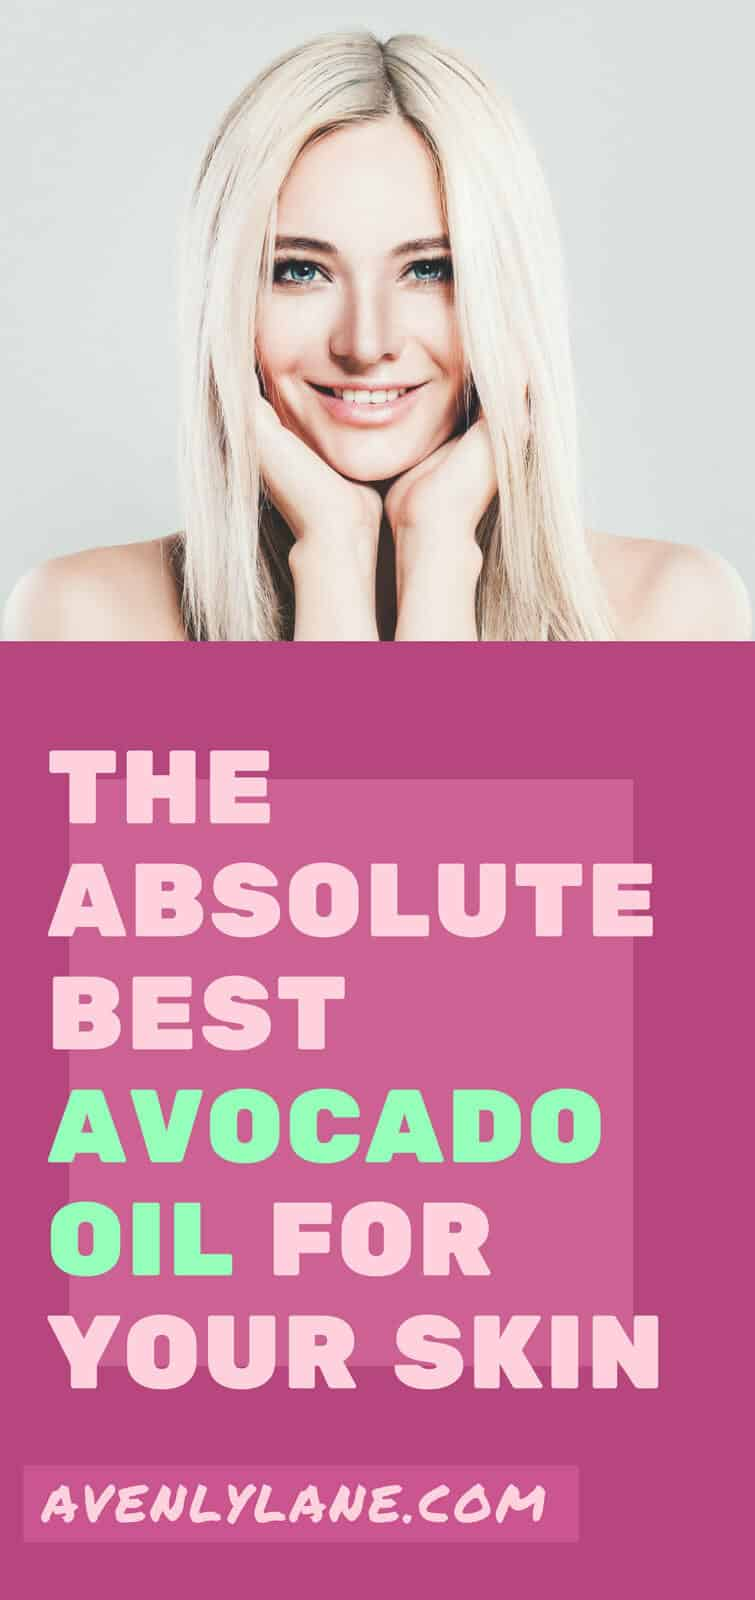 The Absolute Best Avocado Oil For Skin | Avenly Lane | Fashion, Beauty + Healthy Living